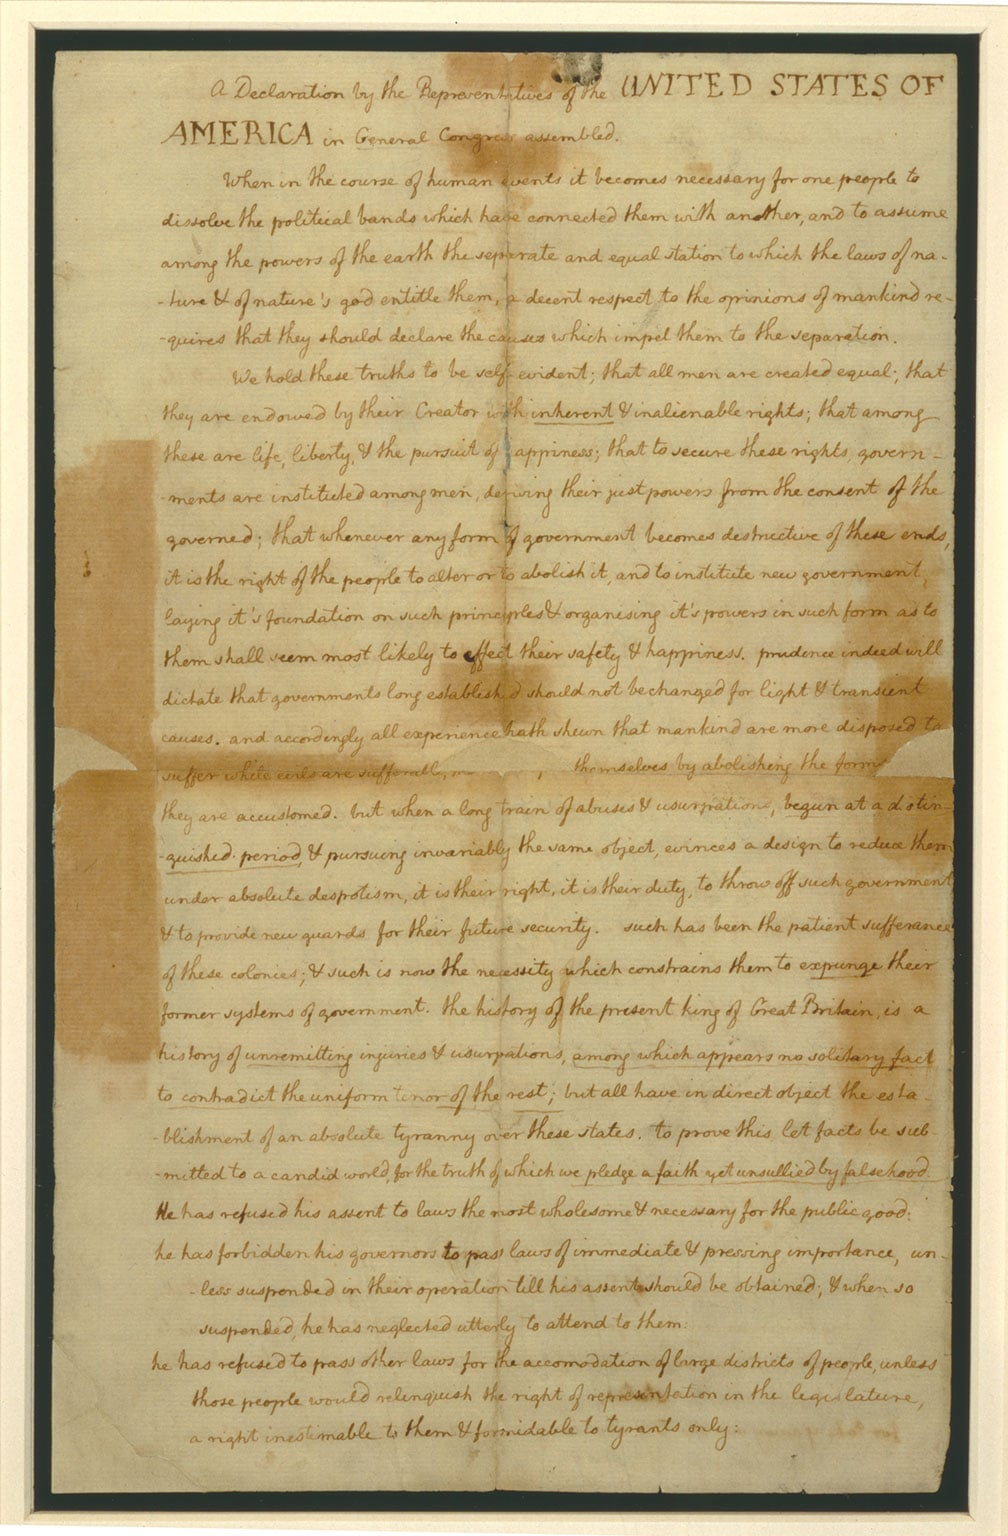 Page one of the Declaration of Independence